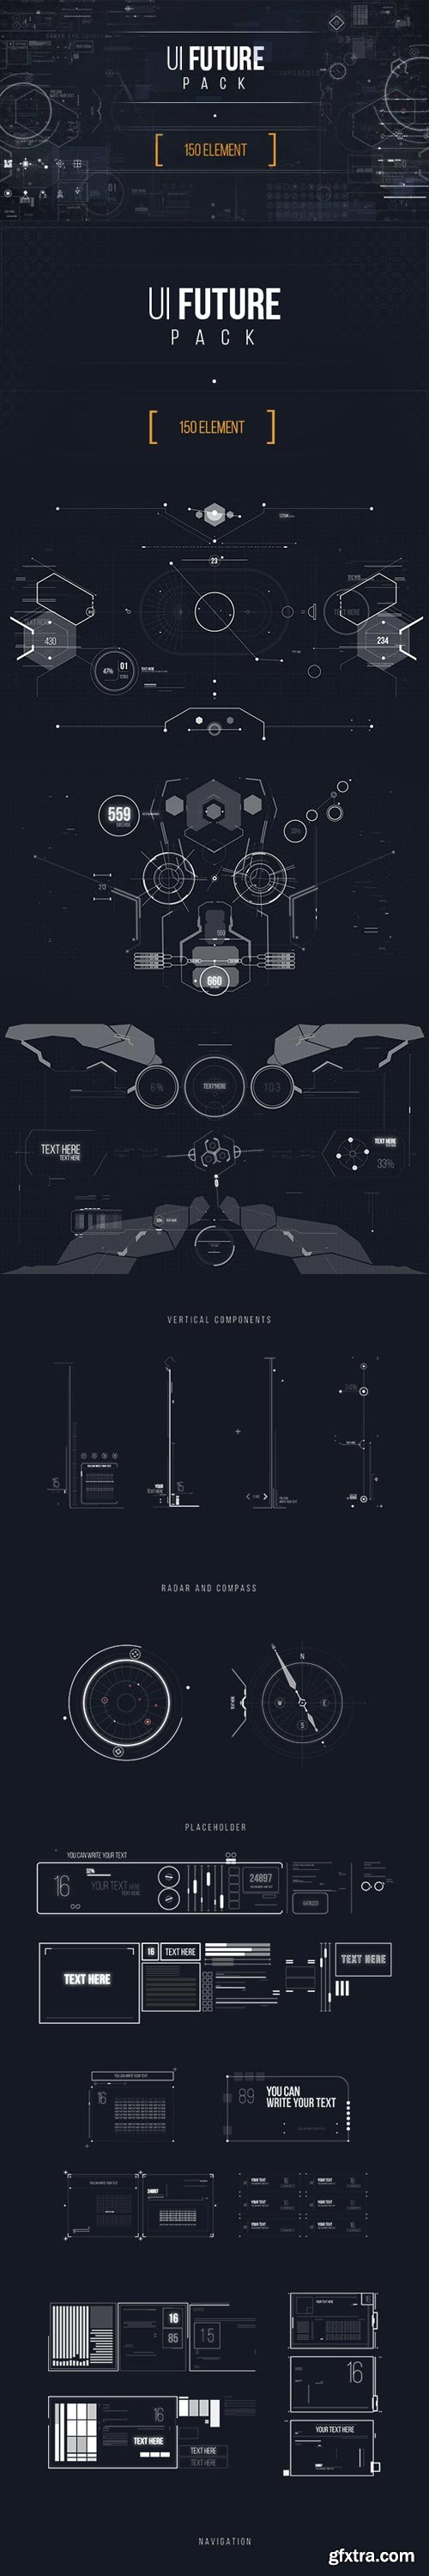 Videohive - UI FUTURE PACK Footage Pack/ Ultimate Interface Screens/ Icons/ Target/ Grid/ Sci-fi and Technology - 17465573